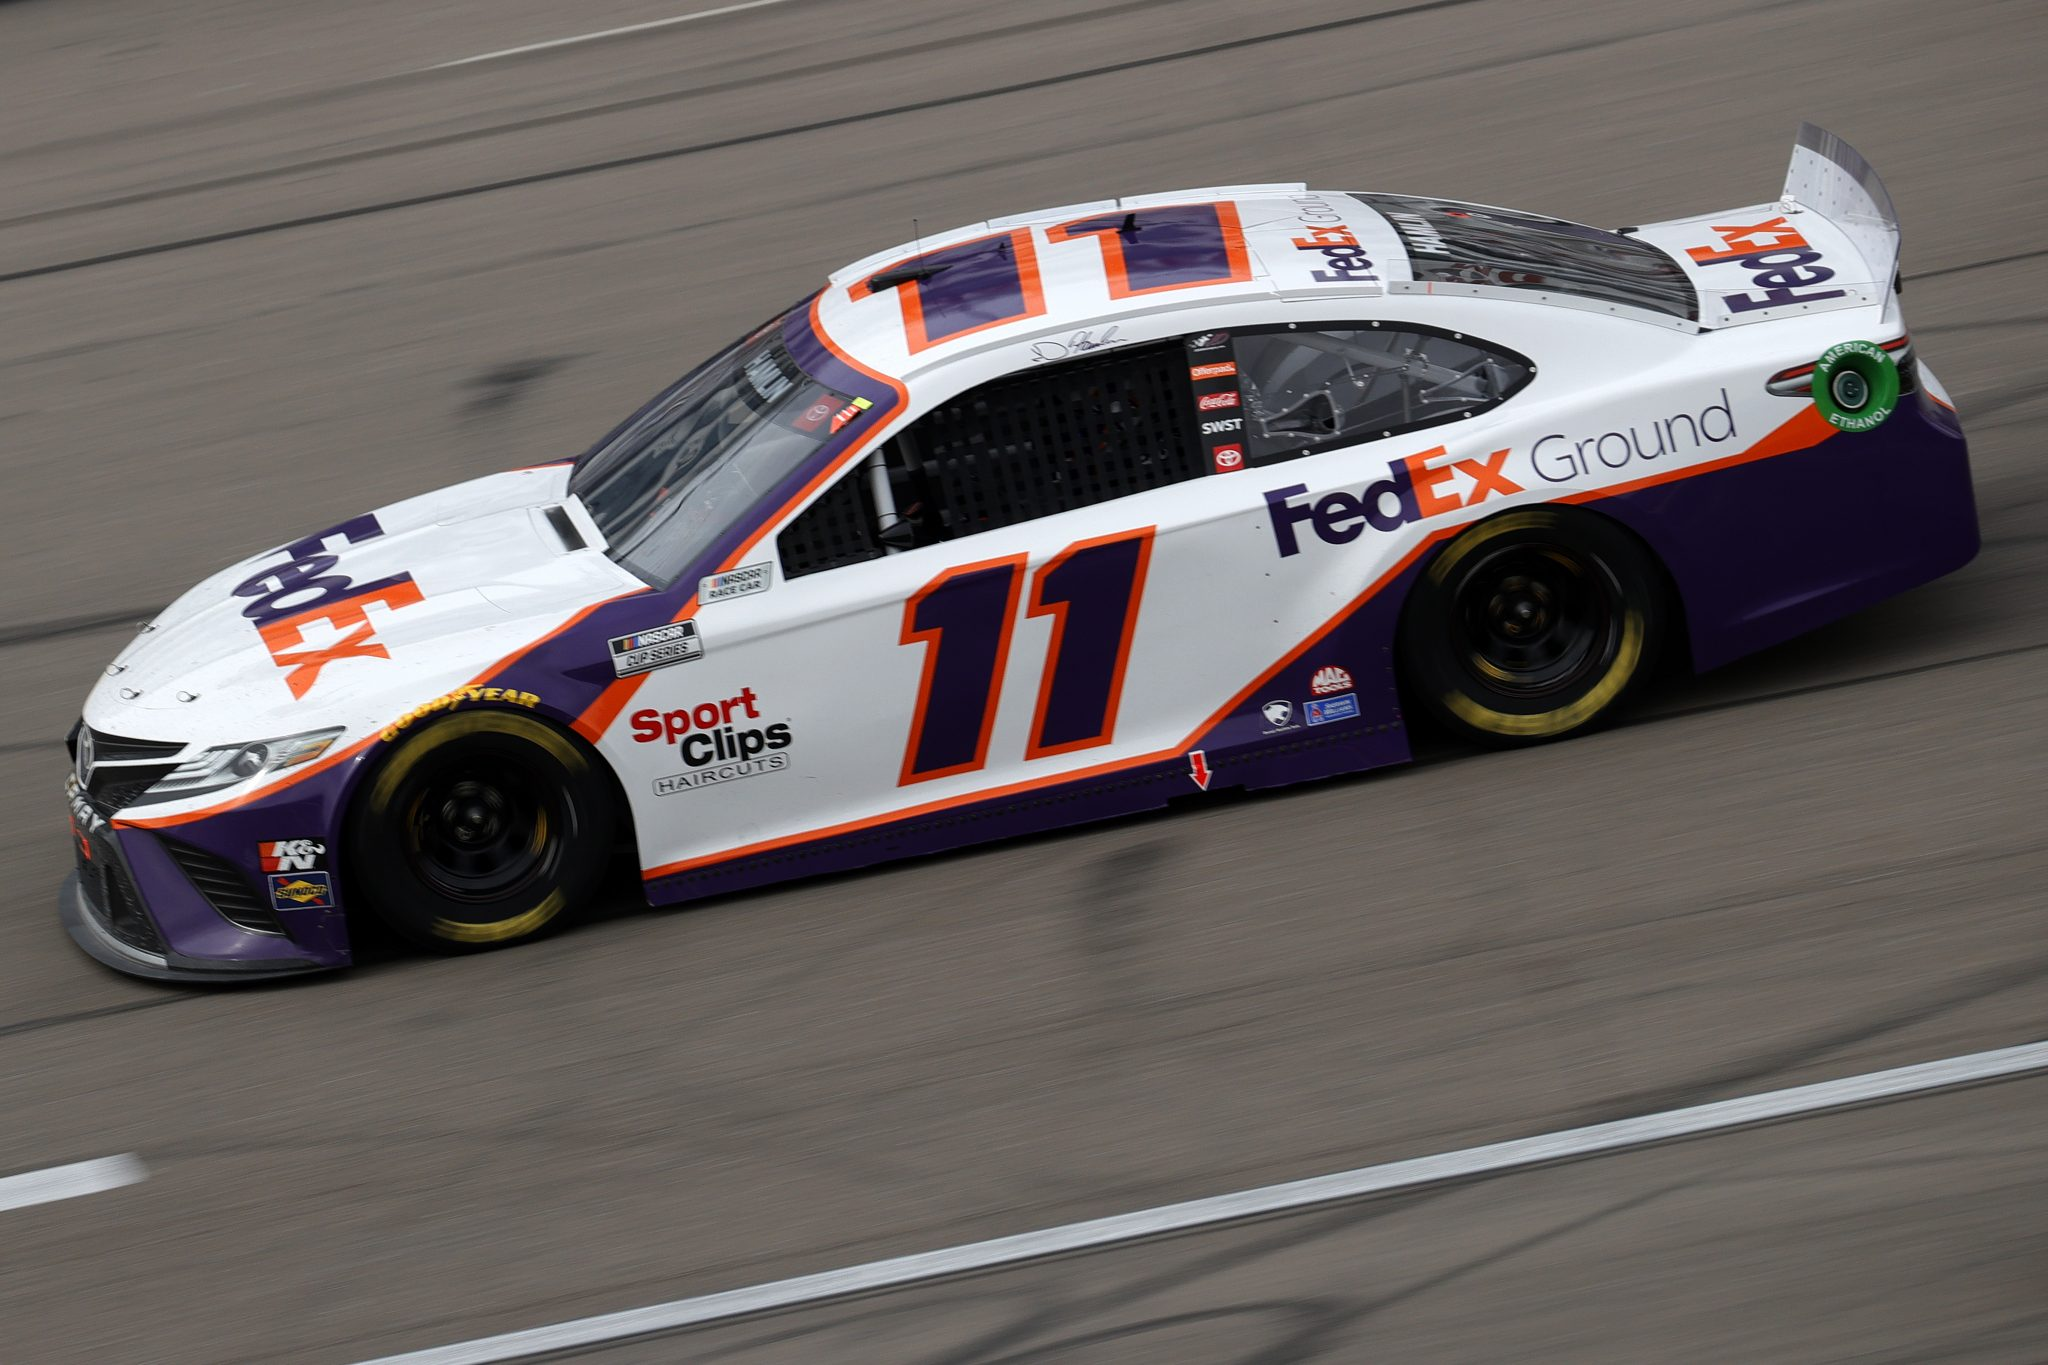 LAS VEGAS, NEVADA - MARCH 07: Denny Hamlin, driver of the #11 FedEx Ground Toyota, drives during the NASCAR Cup Series Pennzoil 400 presented by Jiffy Lube at the Las Vegas Motor Speedway on March 07, 2021 in Las Vegas, Nevada. (Photo by Chris Graythen/Getty Images) | Getty Images